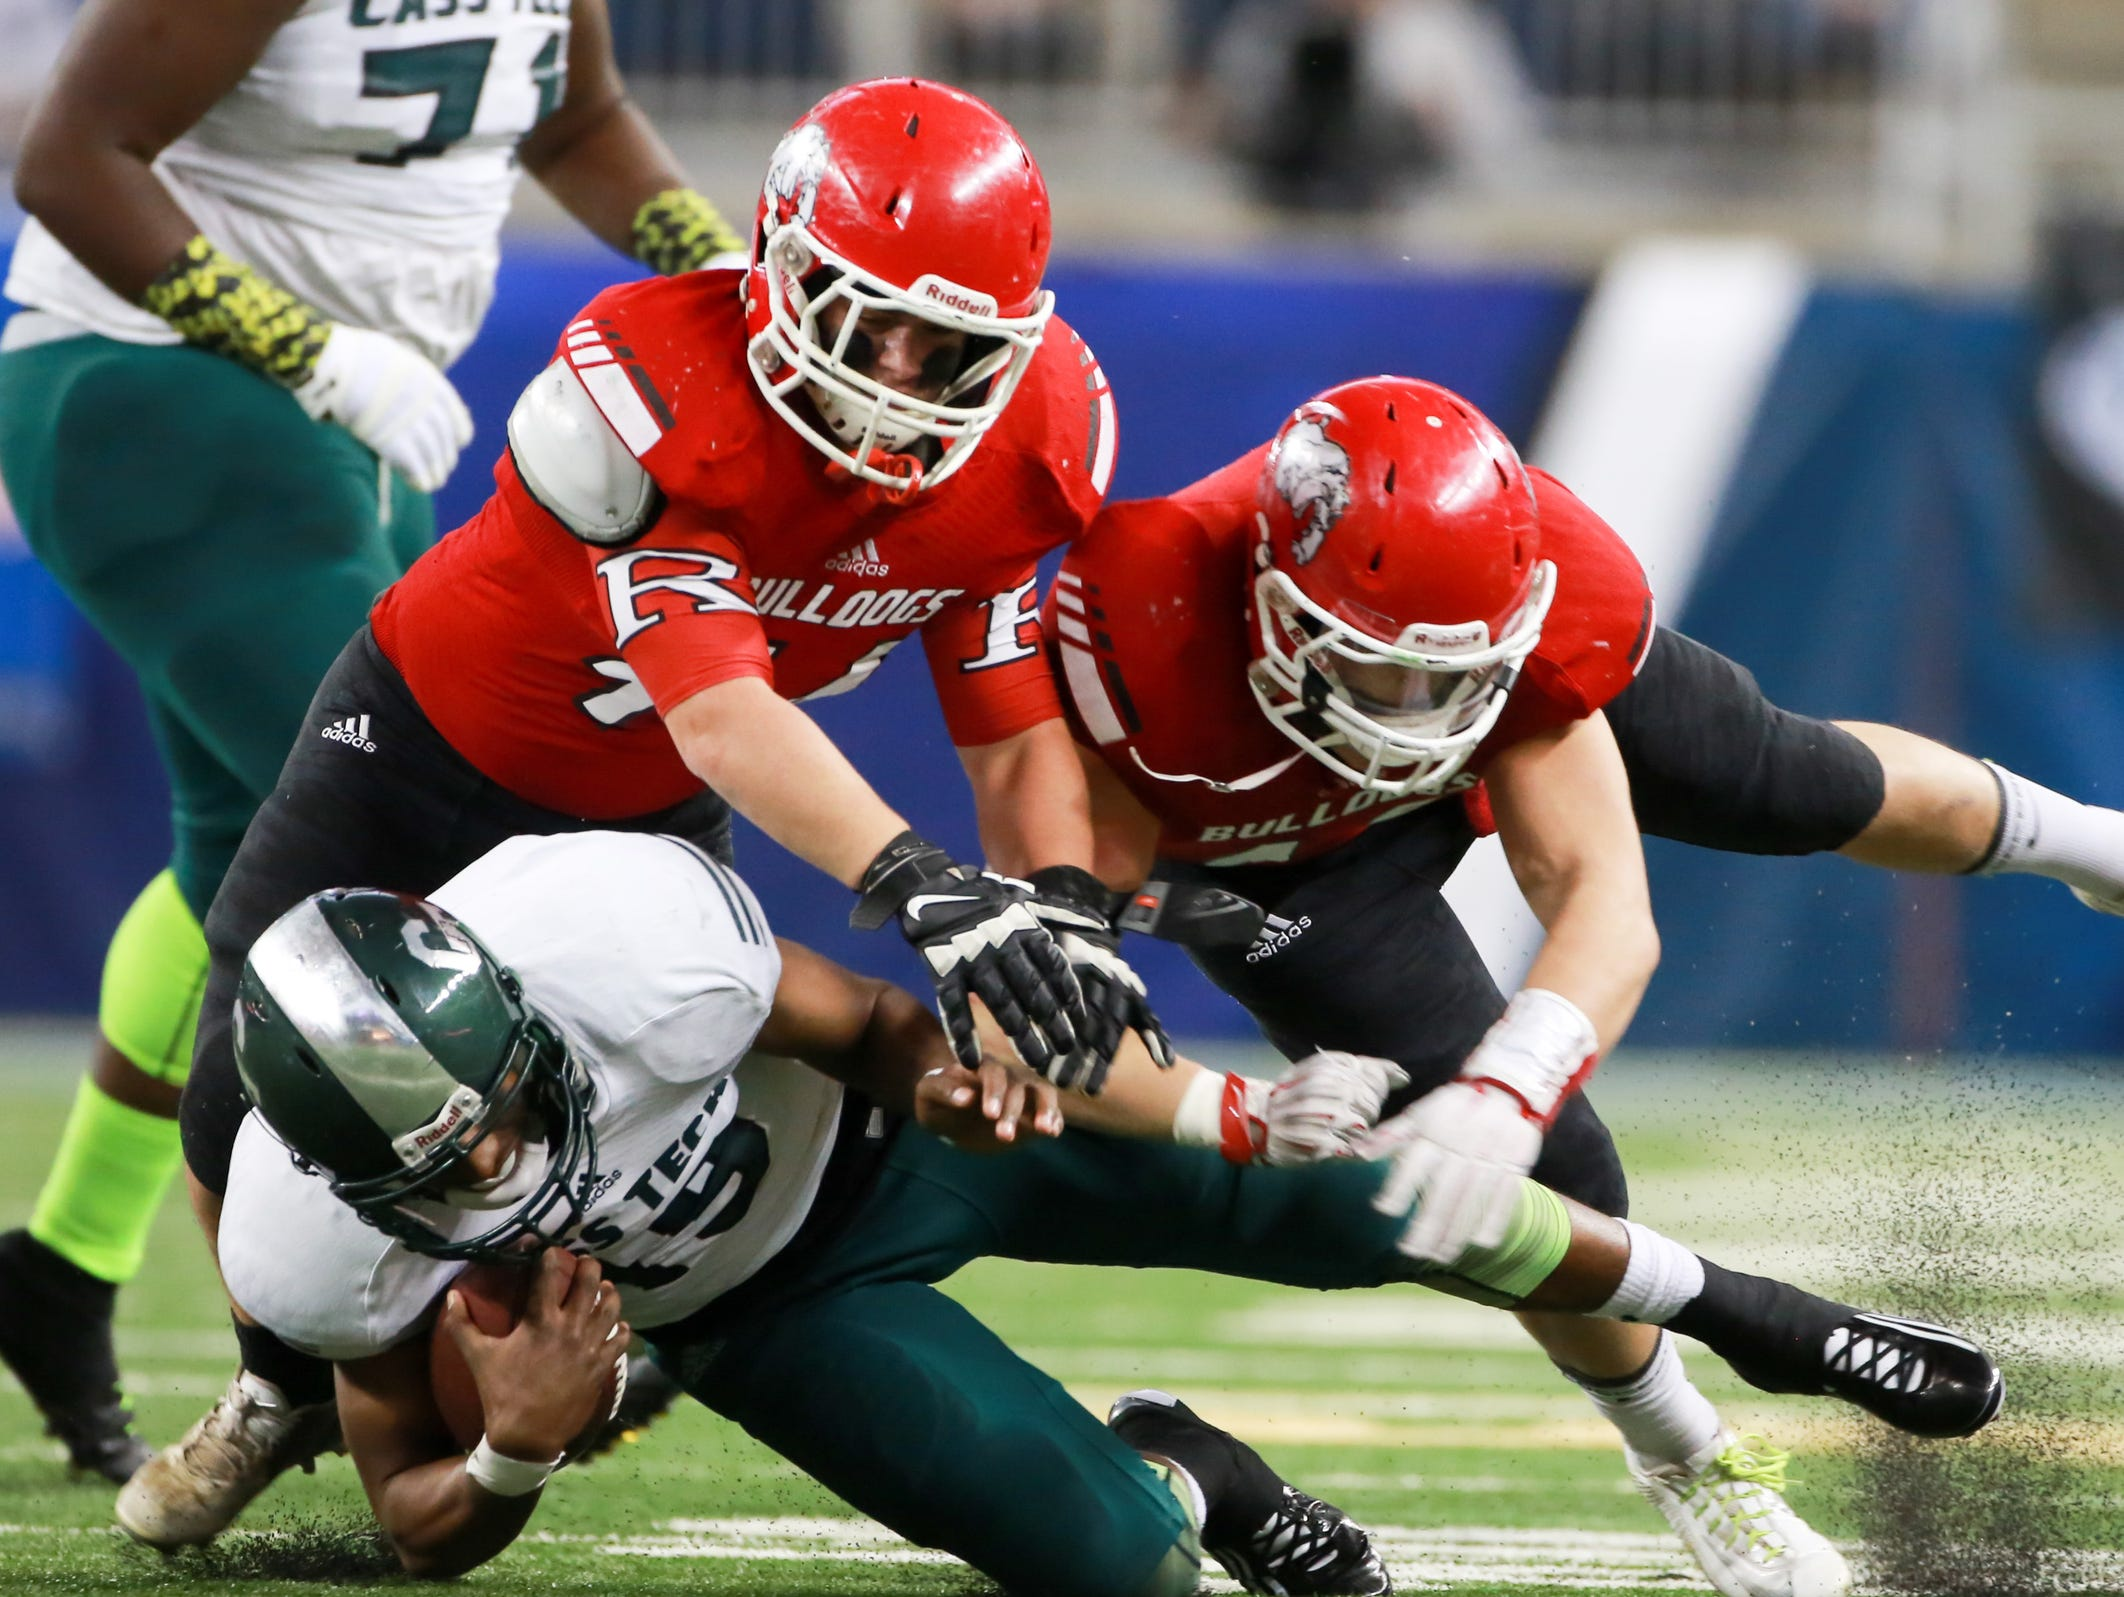 Detroit Cass Tech QB is tackled by Romeo DB Jacob Hernden and Domenico Bongiorno after gaining yards, during the first half of the Michigan High School Athletic Association football Division 1 finals at Ford Field in Detroit on Saturday, Nov. 28, 2015.